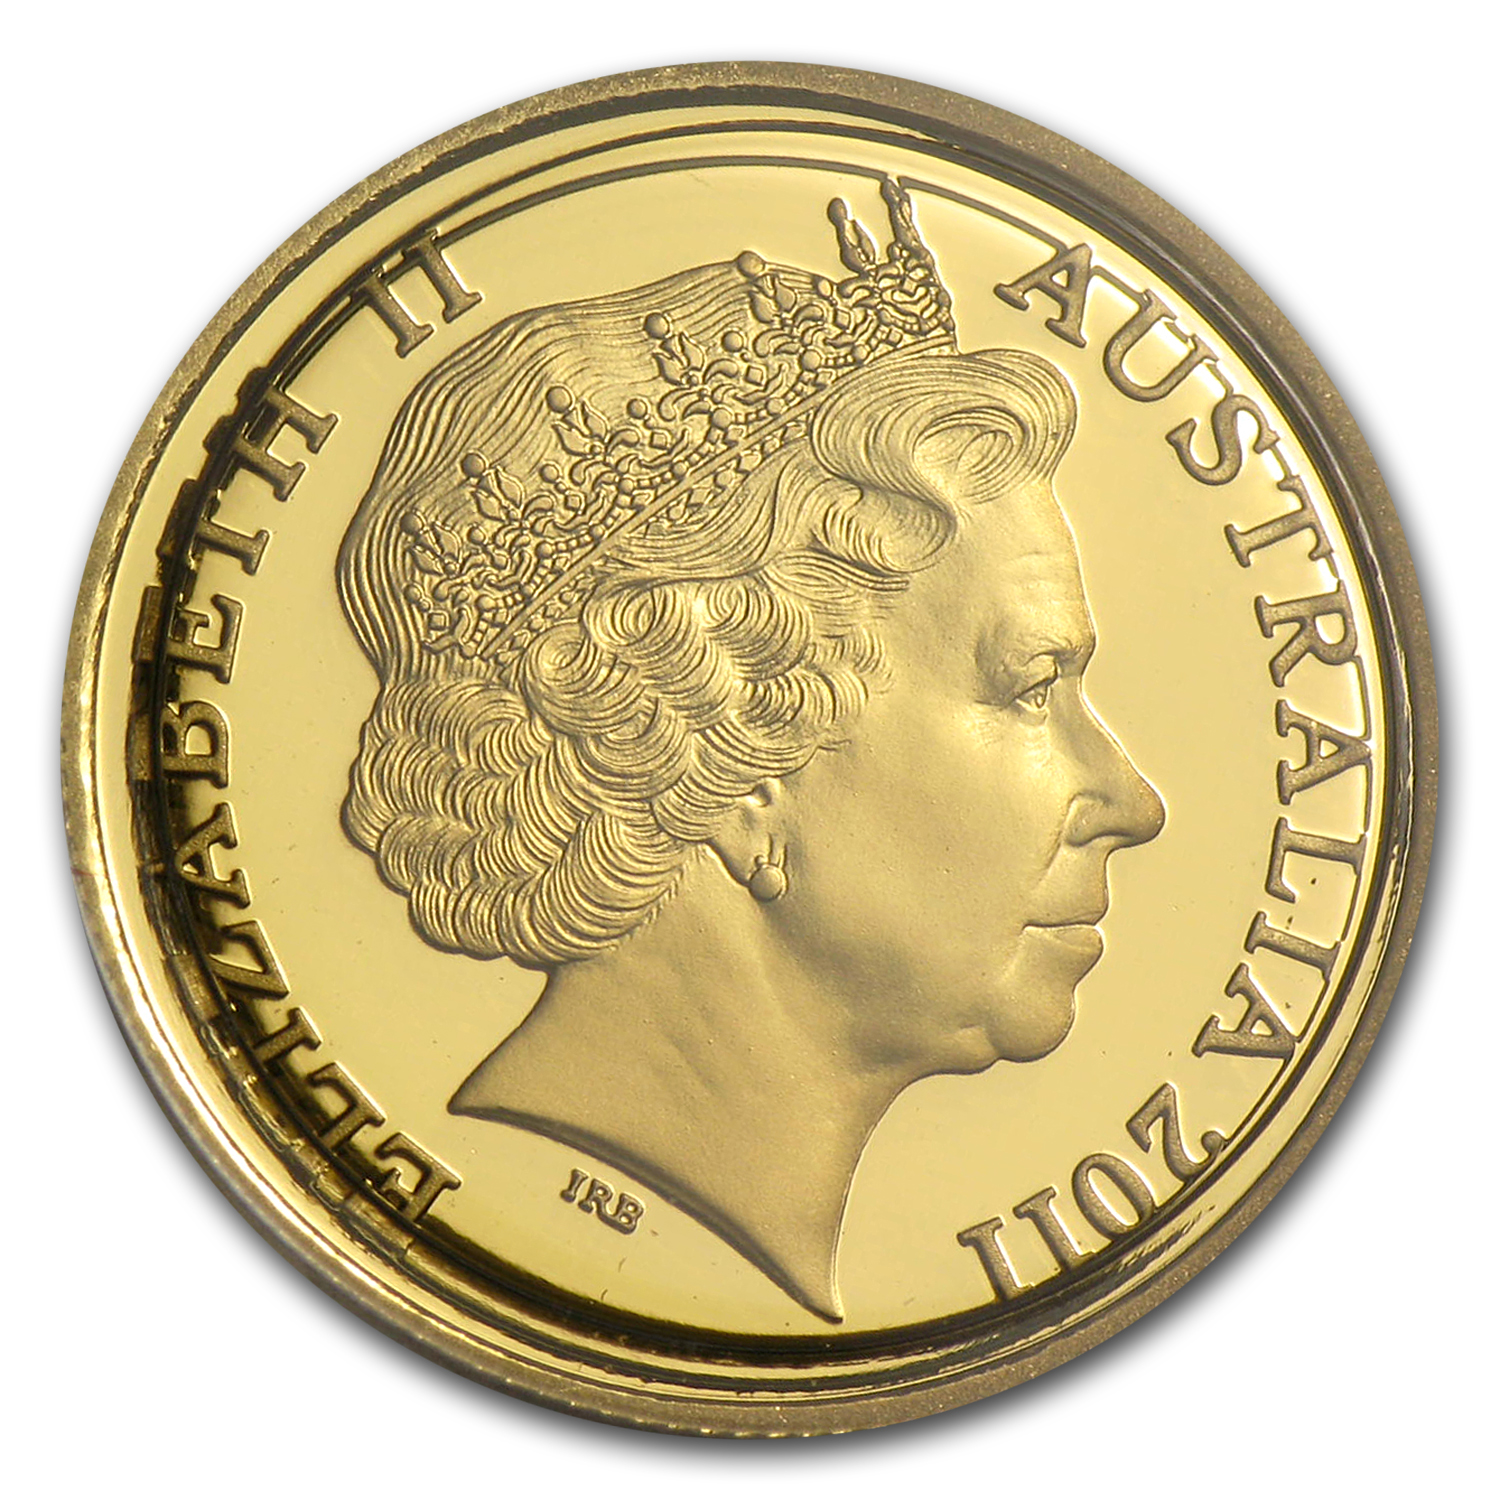 2011 Australia 1/10 oz Proof Gold Kangaroo